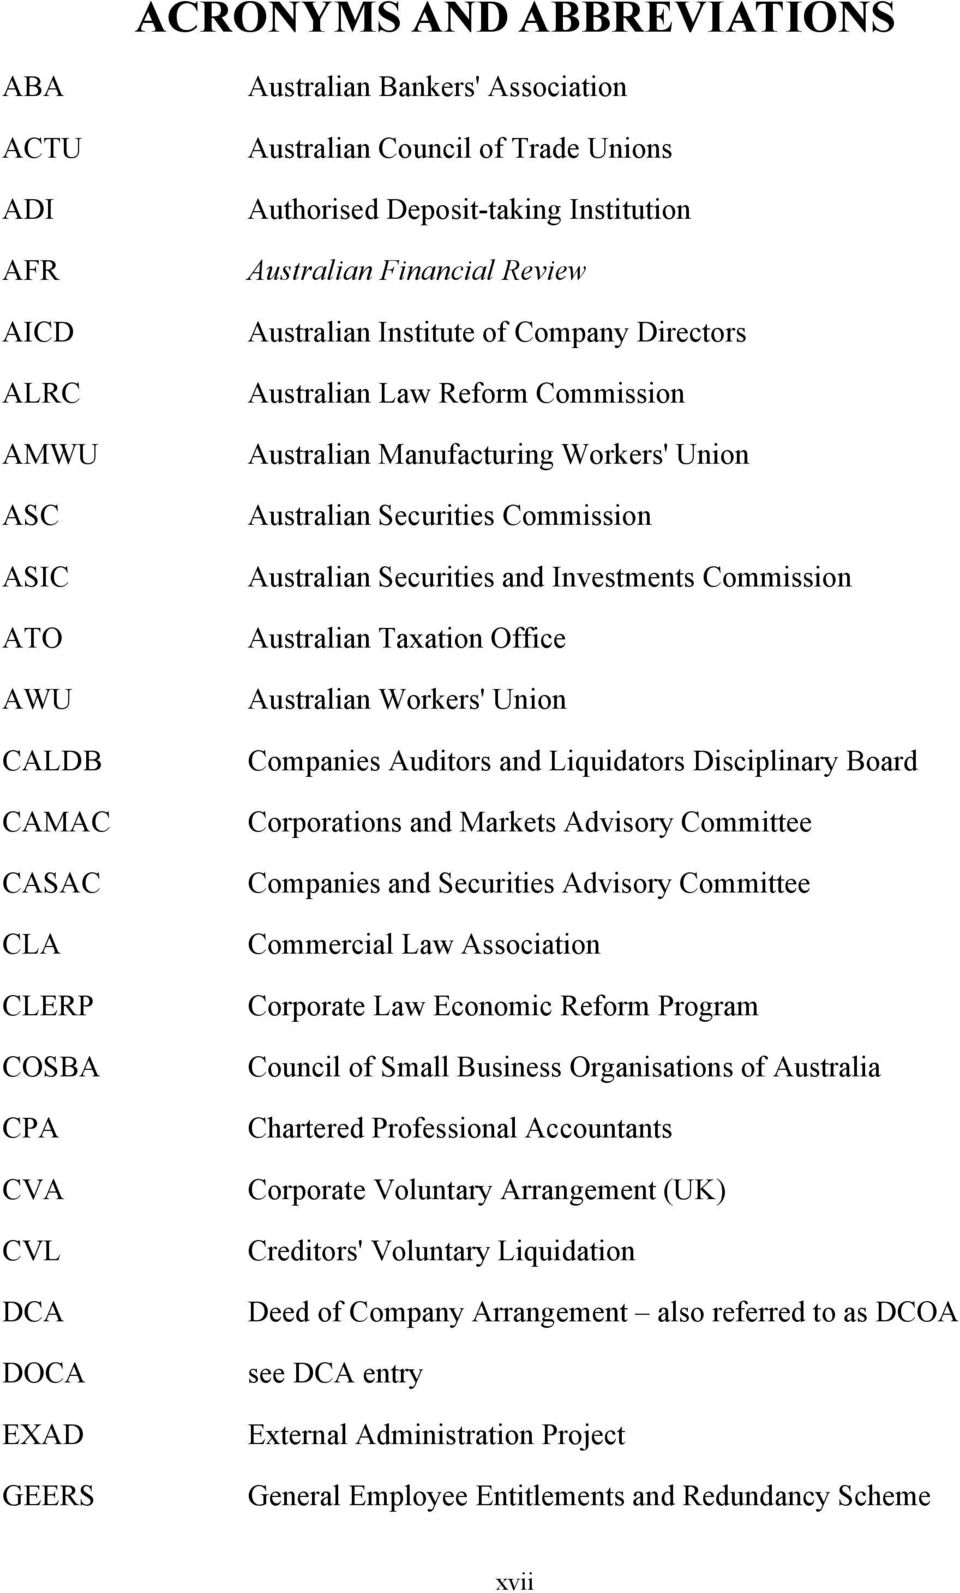 Australian Securities Commission Australian Securities and Investments Commission Australian Taxation Office Australian Workers' Union Companies Auditors and Liquidators Disciplinary Board